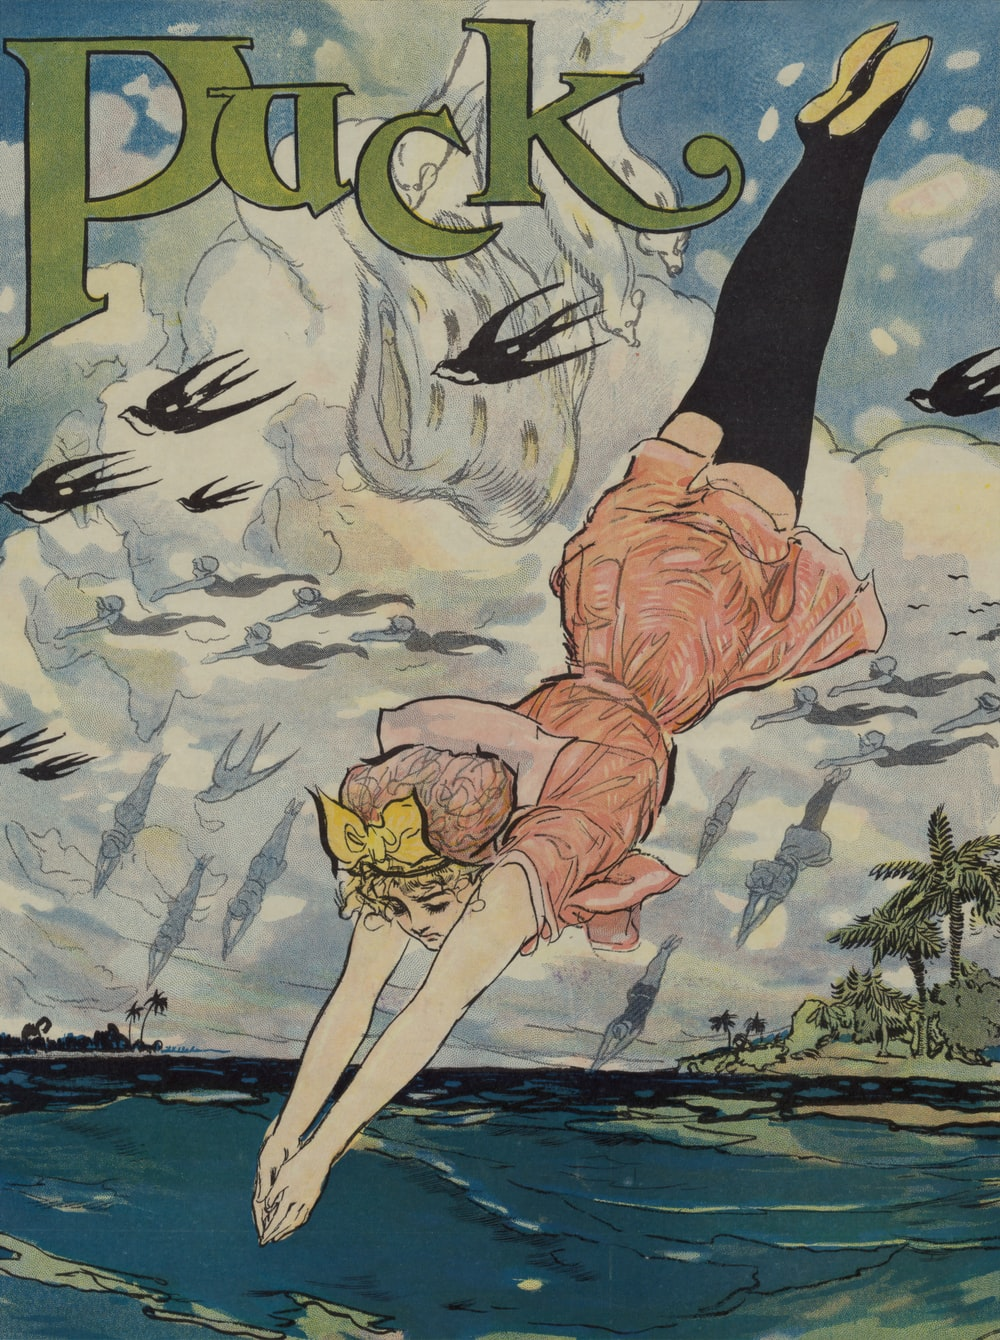 From Maine to Florida. Cartoon illustration by Gordon Ross and published for Puck Magazine, 1911.